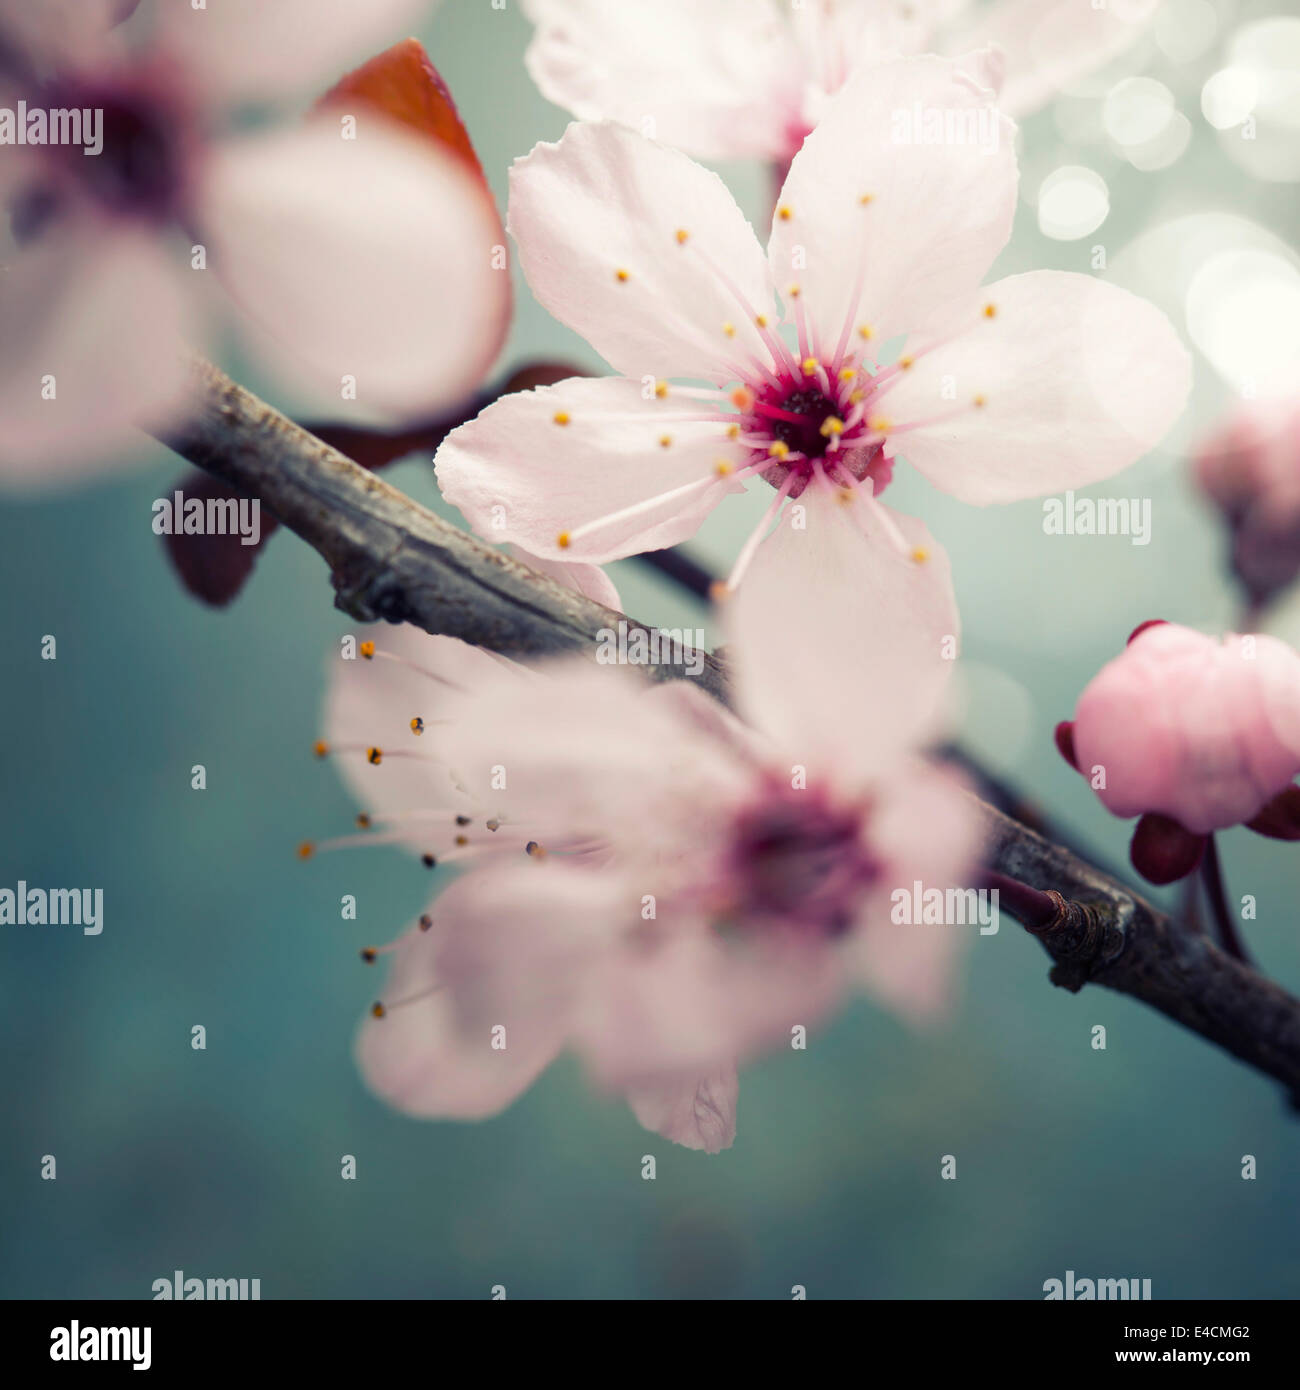 Spring blossom on rustic wooden table - Stock Image